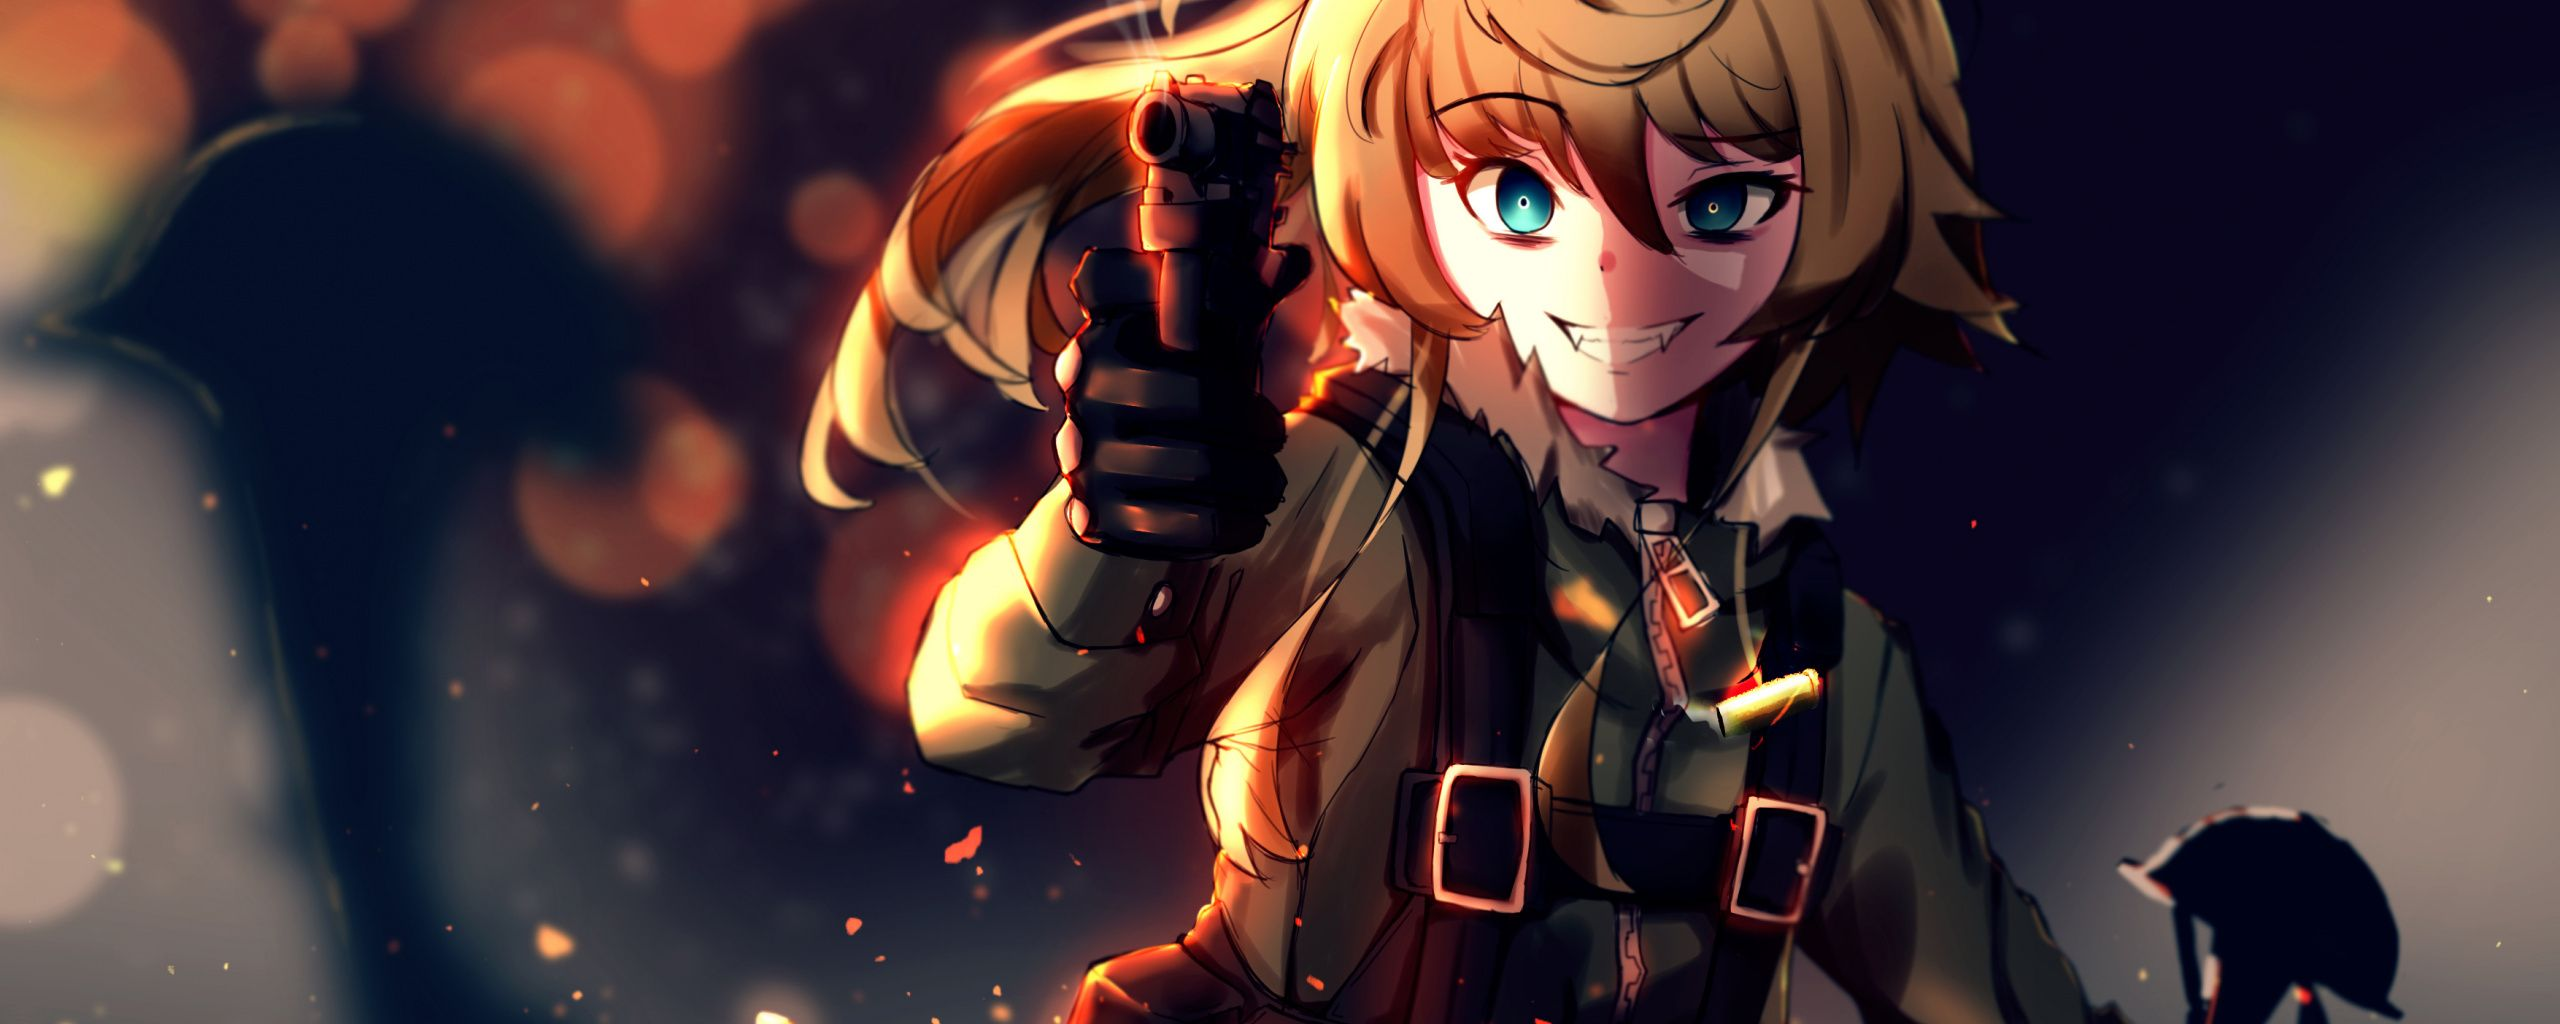 2560x1024 Wallpaper Artwork Soldier Tanya Degurechaff Youjo